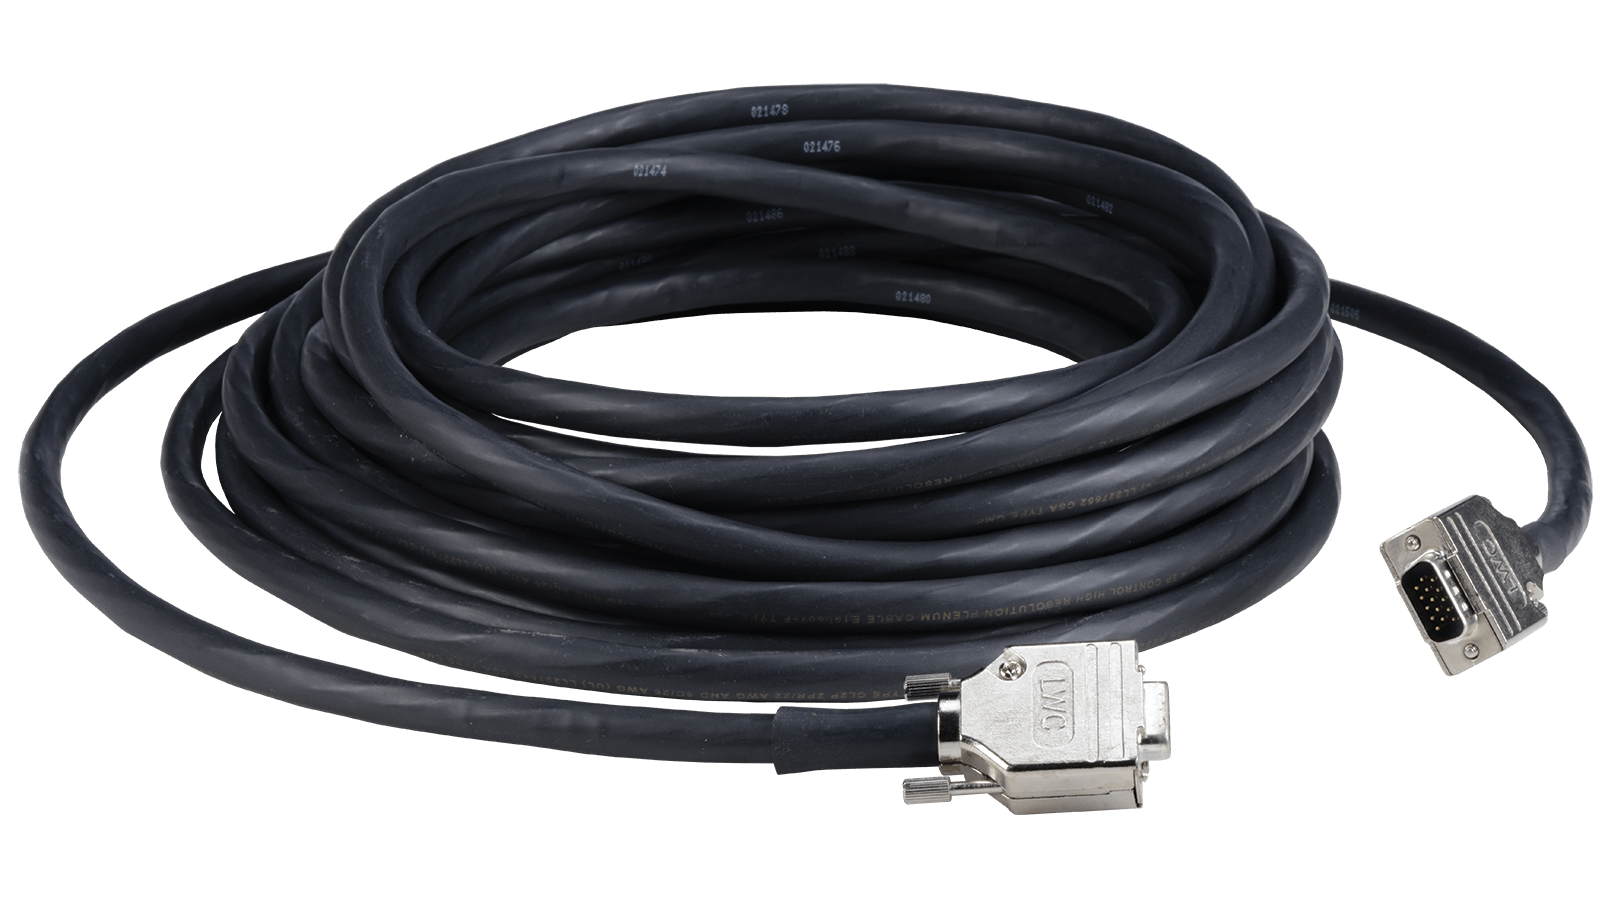 vga extension cable wiring diagram ce lancer g vgam f 50 liberty manufactured male to female